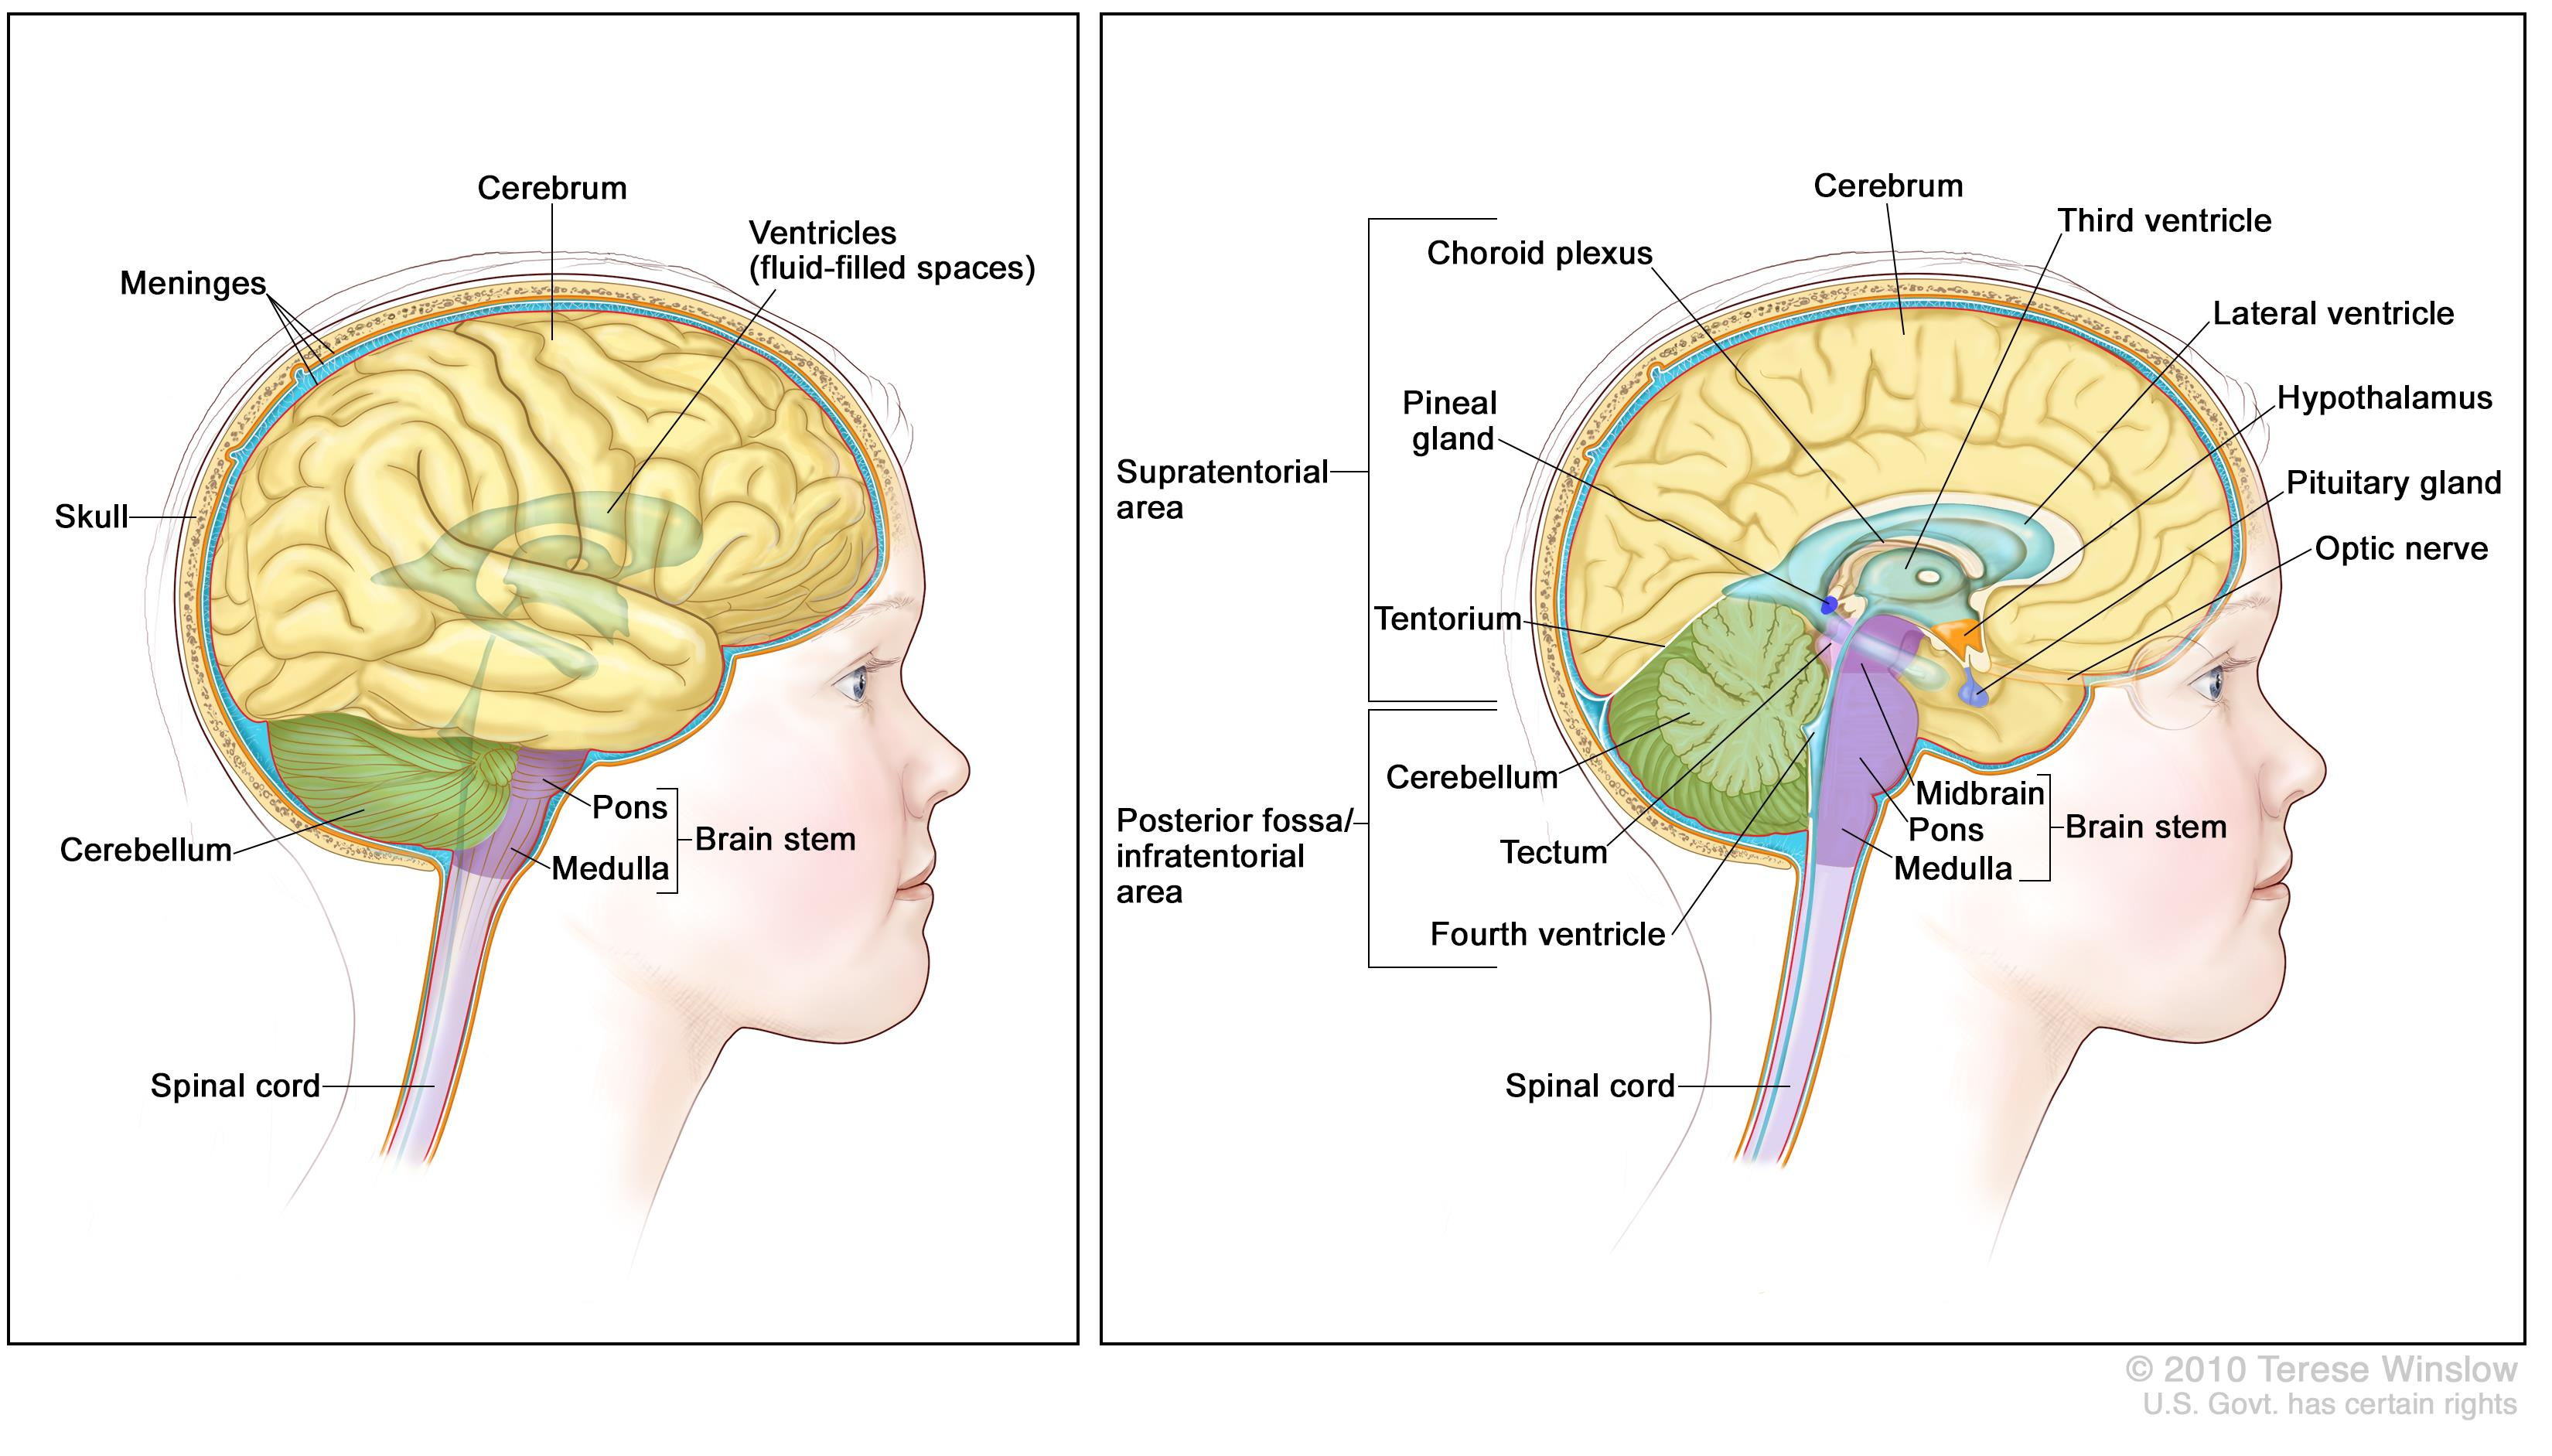 Anatomy of the brain; the right panel shows the supratentorial area (the upper part of the brain) and the posterior fossa/infratentorial area (the lower back part of the brain). The supratentorial area contains the cerebrum, lateral ventricle and third ventricle (with cerebrospinal fluid shown in blue), choroid plexus, pineal gland, hypothalamus, pituitary gland, and optic nerve. The posterior fossa/infratentorial area contains the cerebellum, tectum, fourth ventricle, and brain stem (midbrain, pons, and medulla). The tentorium and spinal cord are also shown. The left panel shows the cerebrum, ventricles (fluid-filled spaces), meninges, skull, cerebellum, brain stem (pons and medulla), and spinal cord.